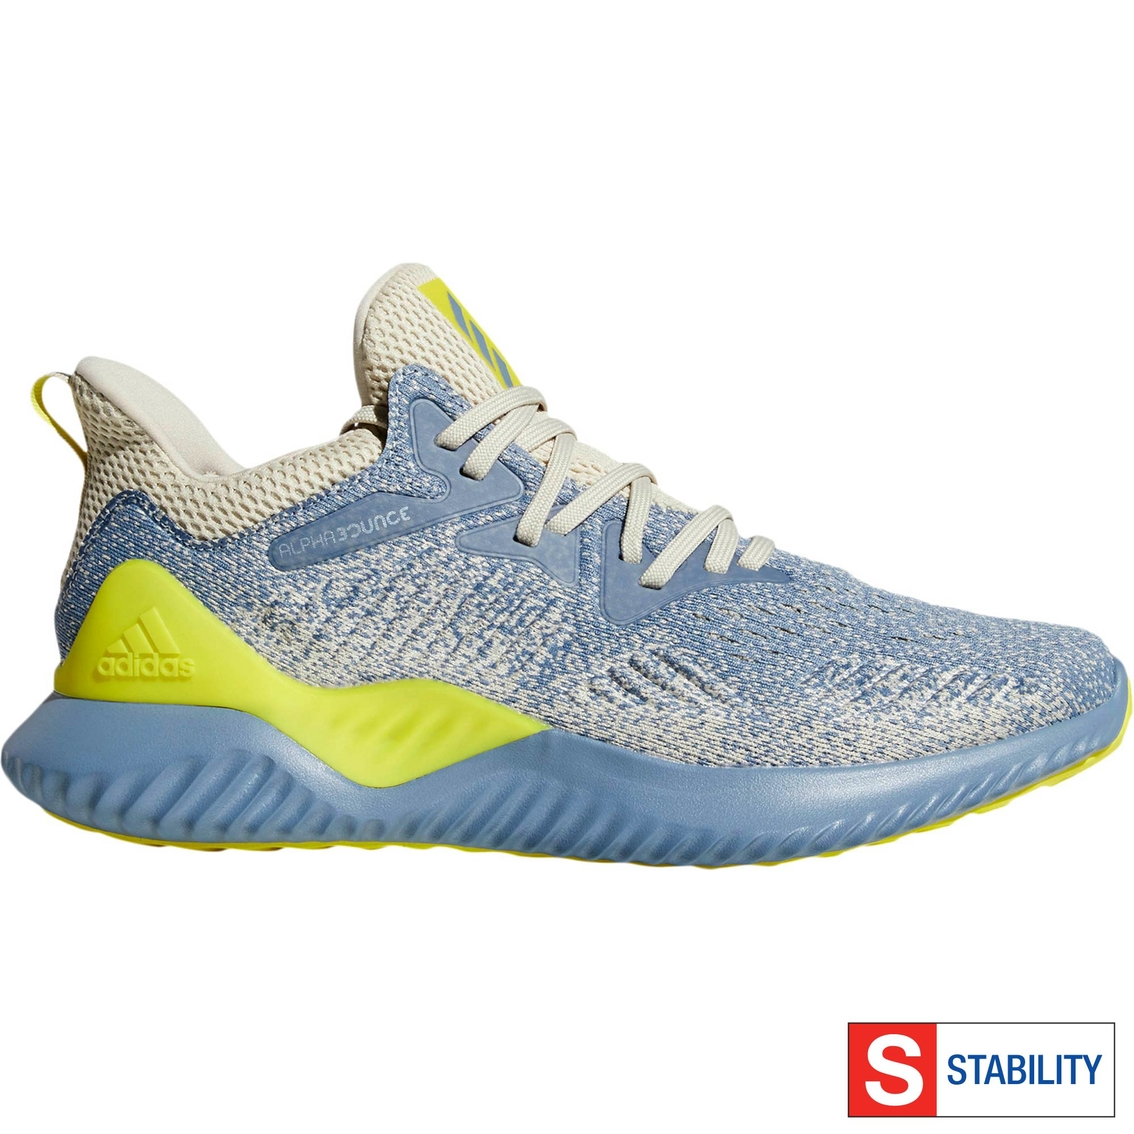 6518be6aa52 Adidas Men s Alphabounce Beyond Running Shoes